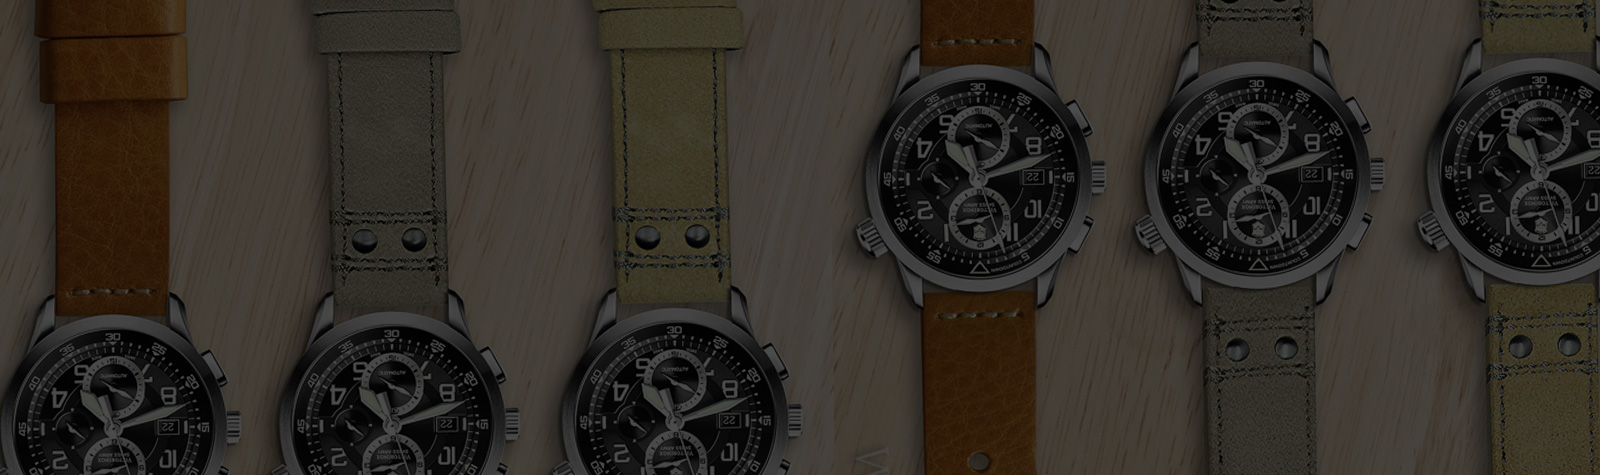 STRAP SWAP: Victorinox Swiss Army Airboss Mach 8 Special Edition Chronograph